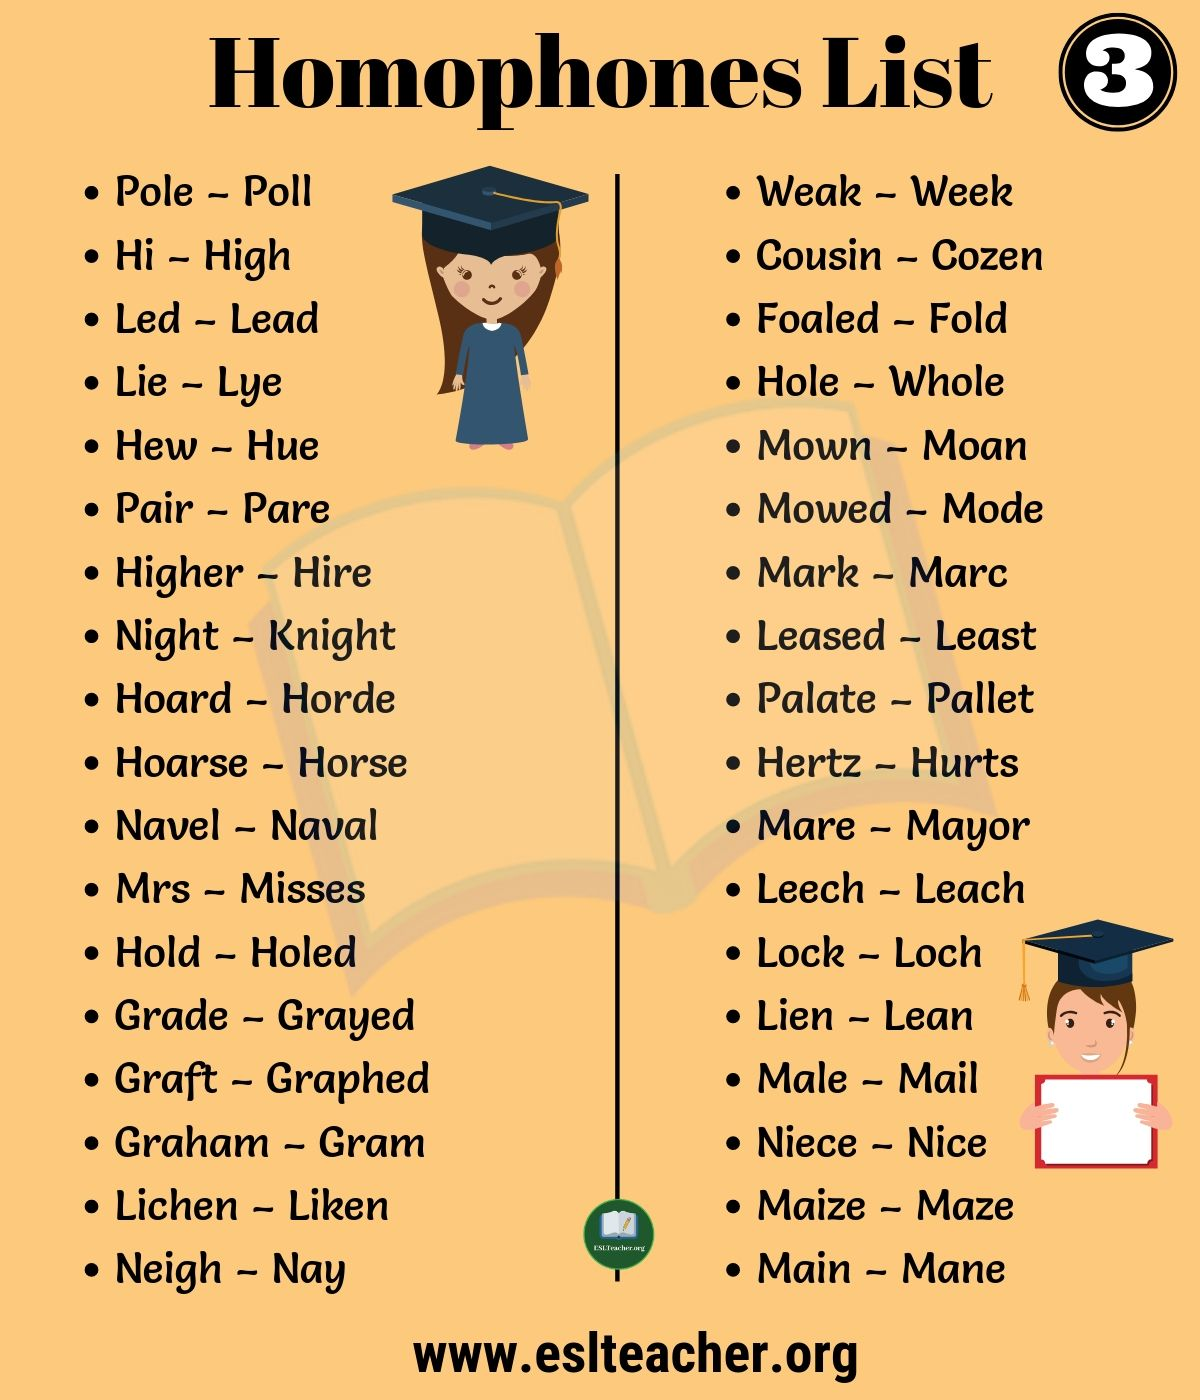 List Of Homophones 111 Popular Sets Of Homophones For Esl